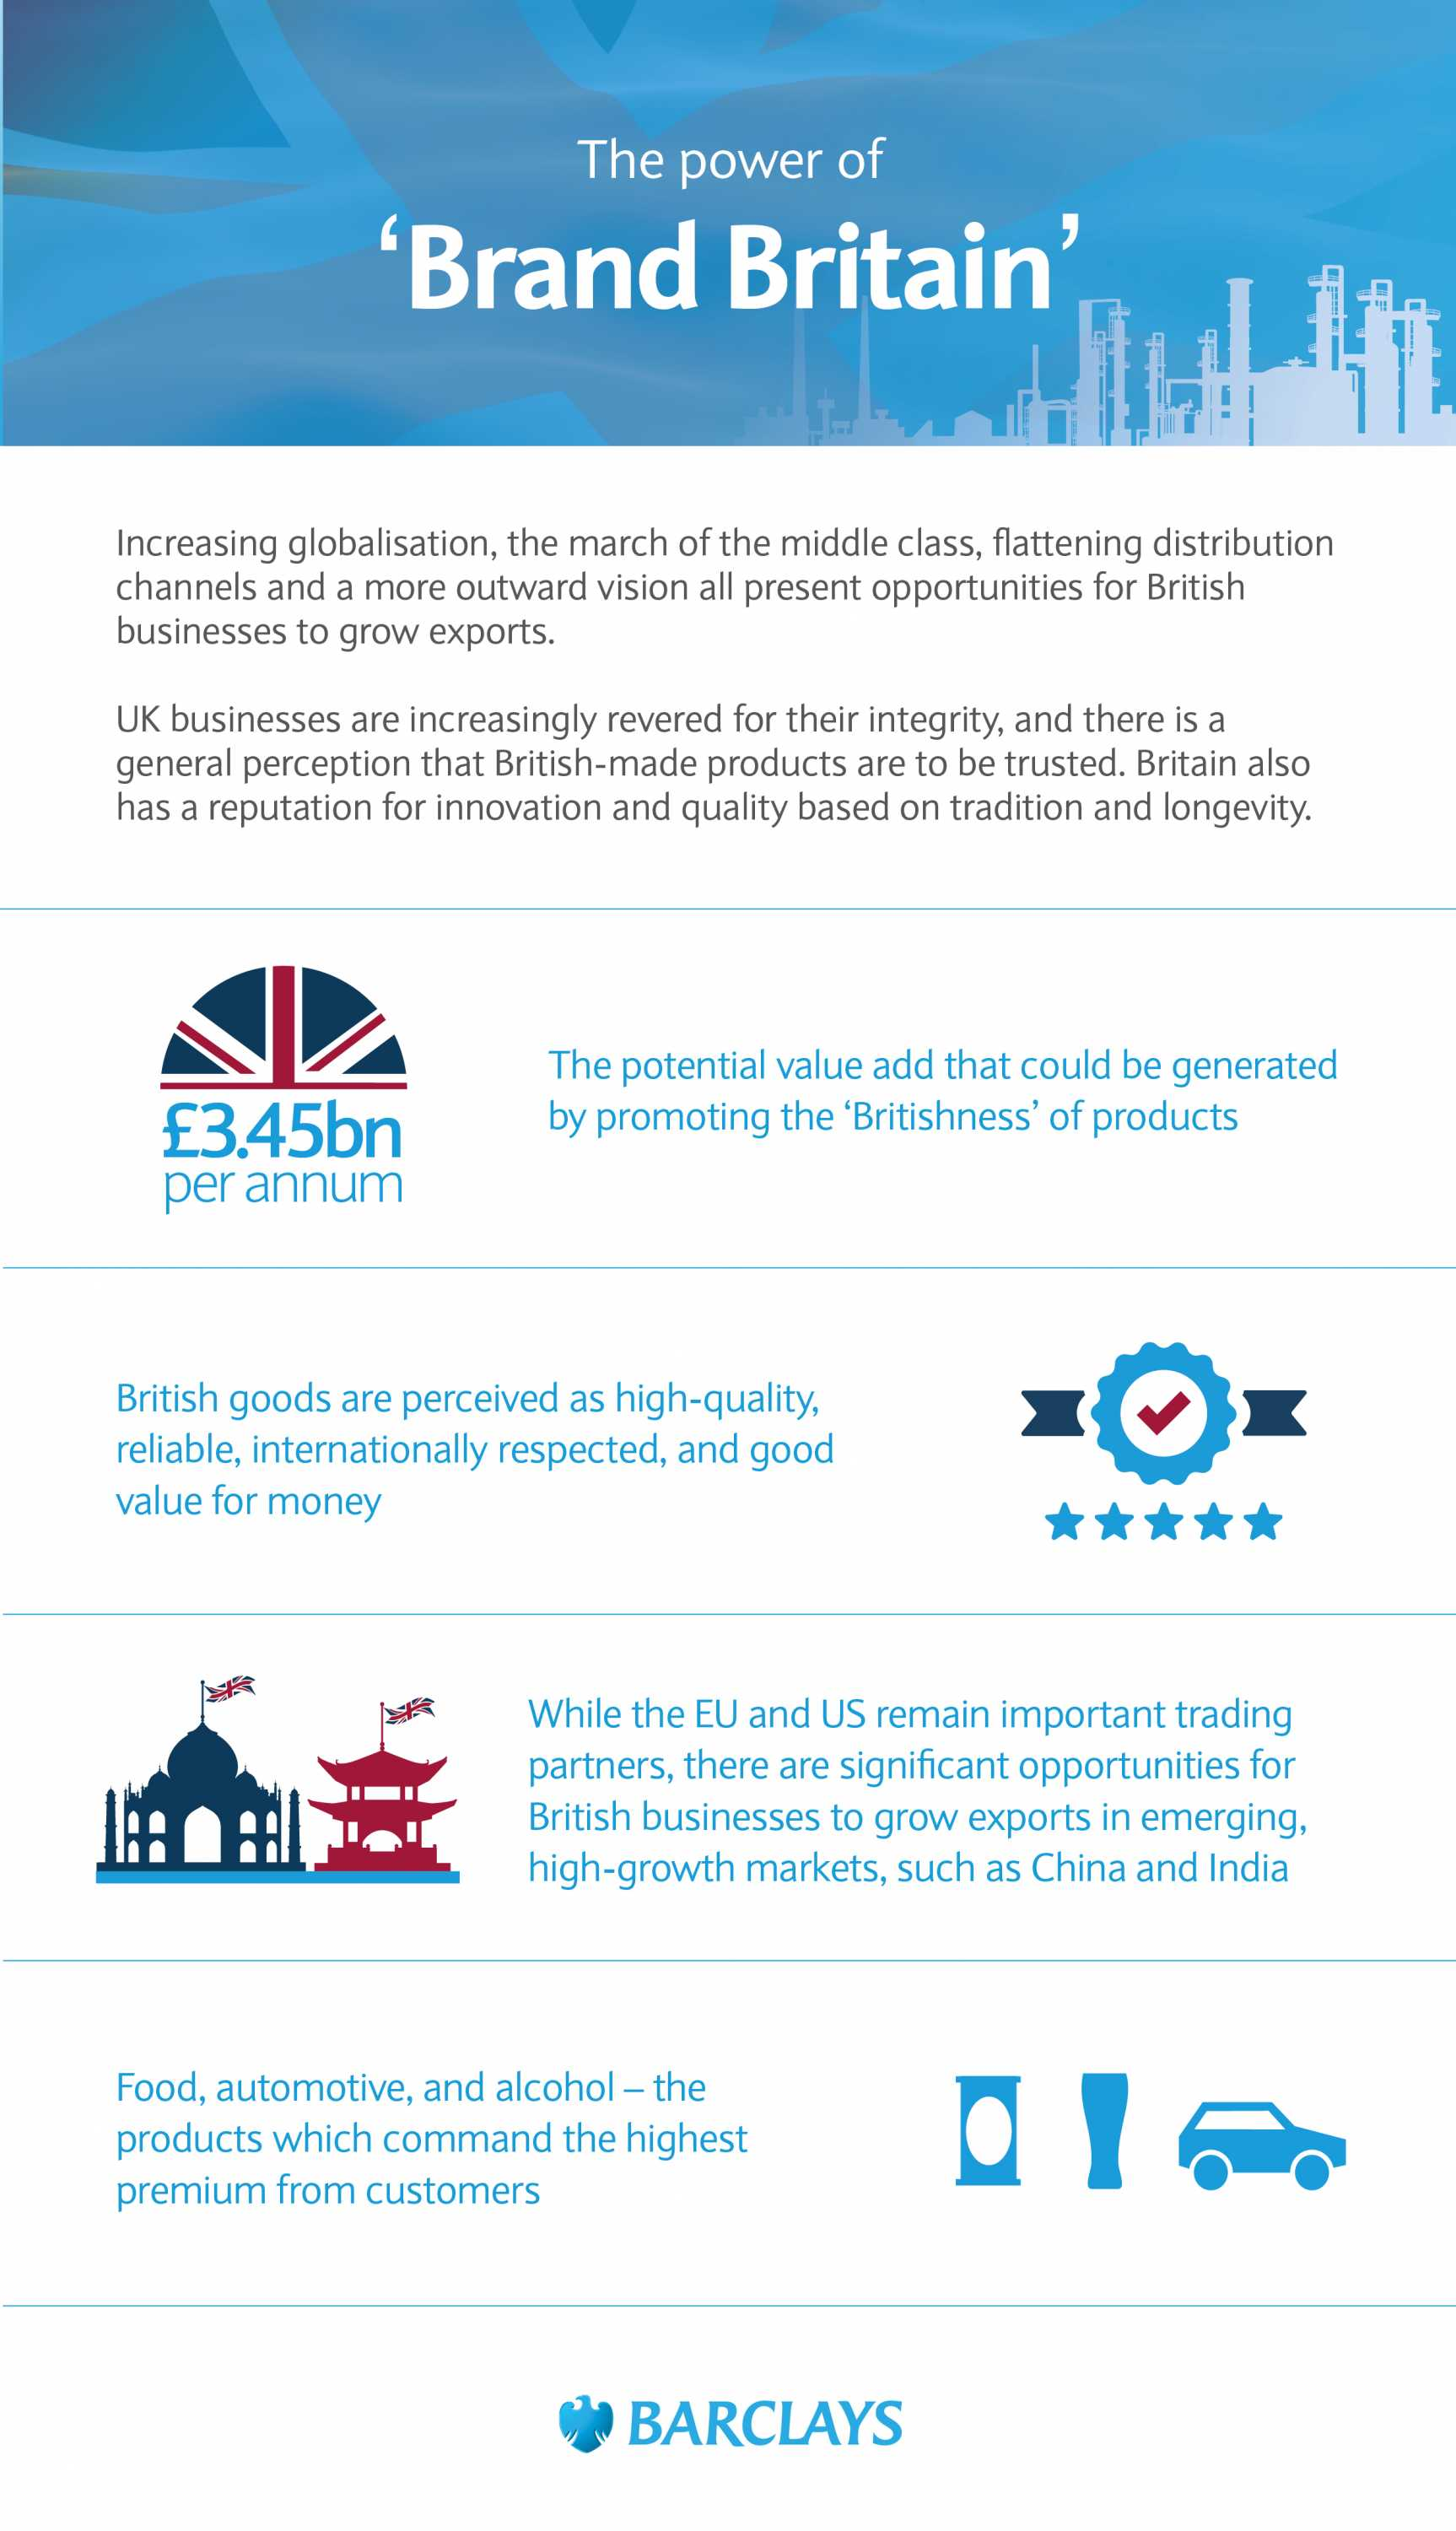 Barclays Brand Britain: Export Opportunities for UK Businesses - Infographic